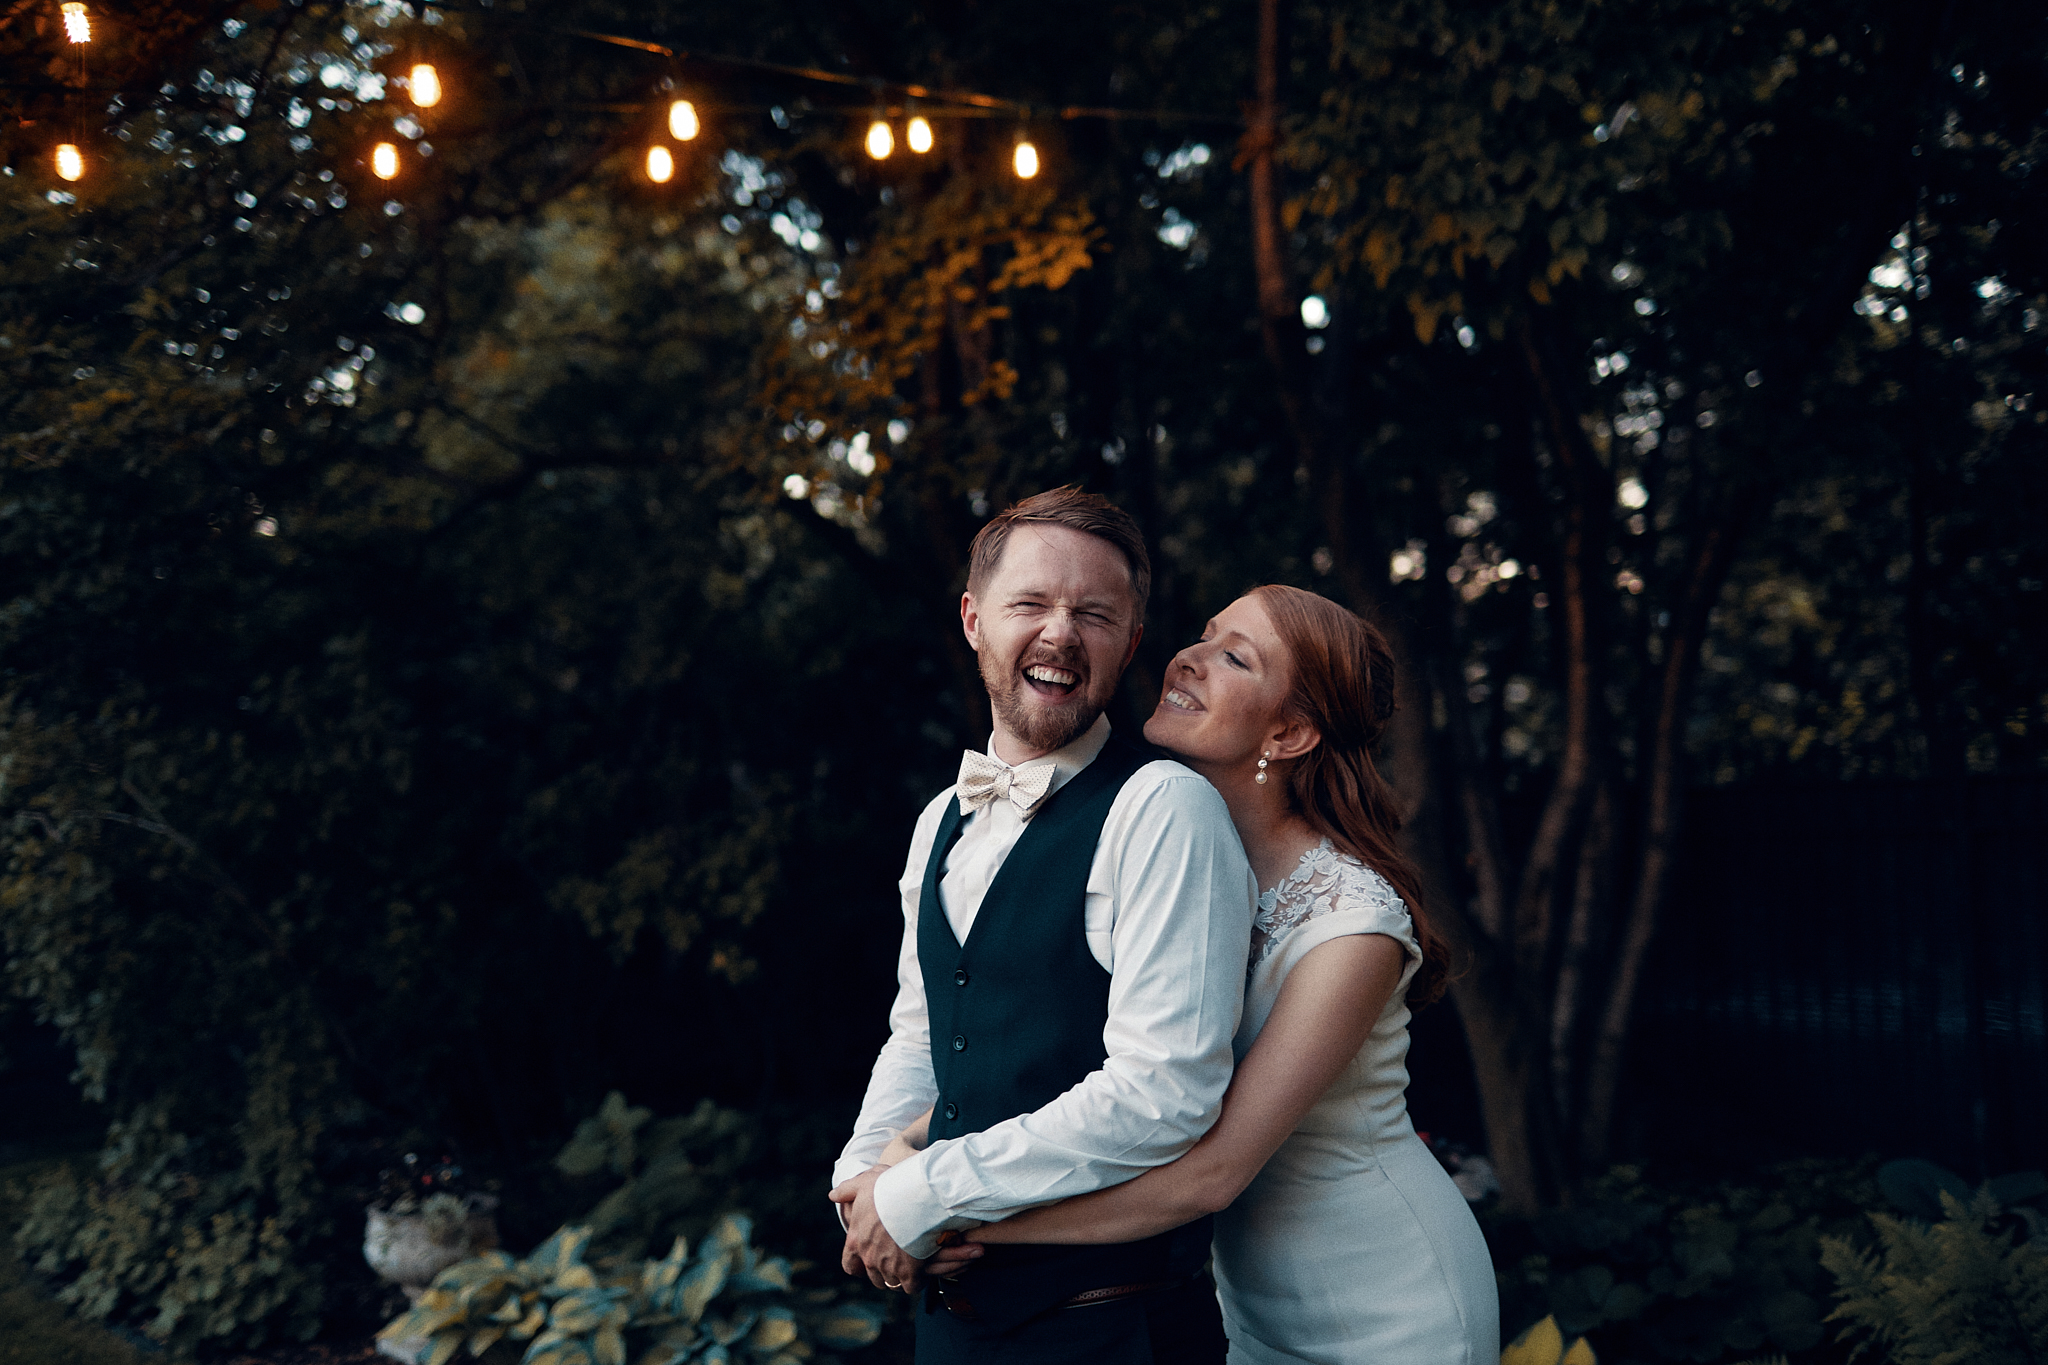 Late-Fall_at_Irvine_Park_Wedding_Photography_High_End_Minneapolis_Brand_Photographer_Something_Candid_030.JPG